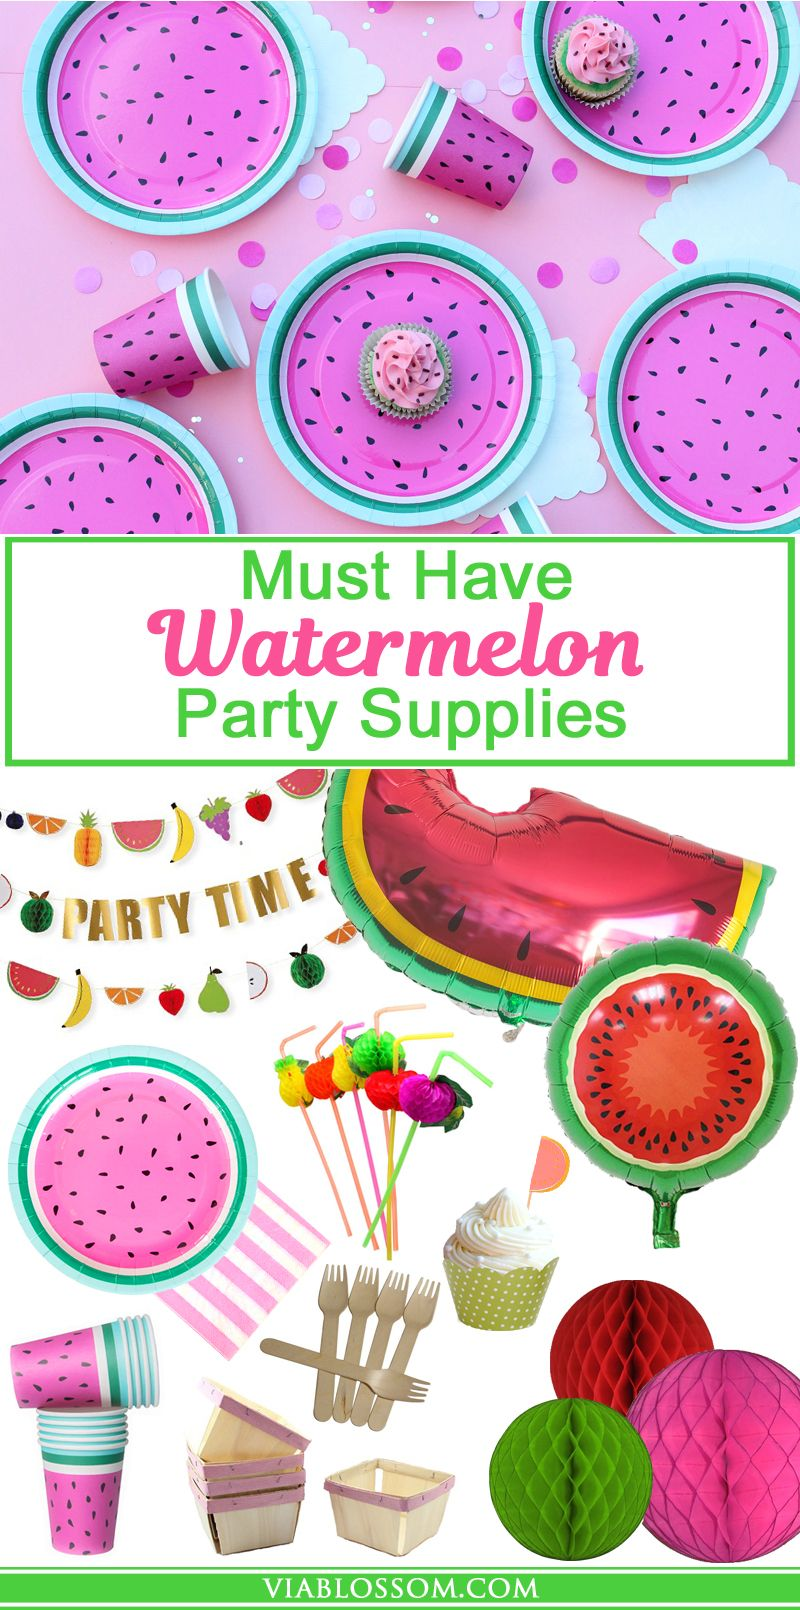 Must Have Watermelon Party Decorations for your summer parties or Watermelon Themed Party!